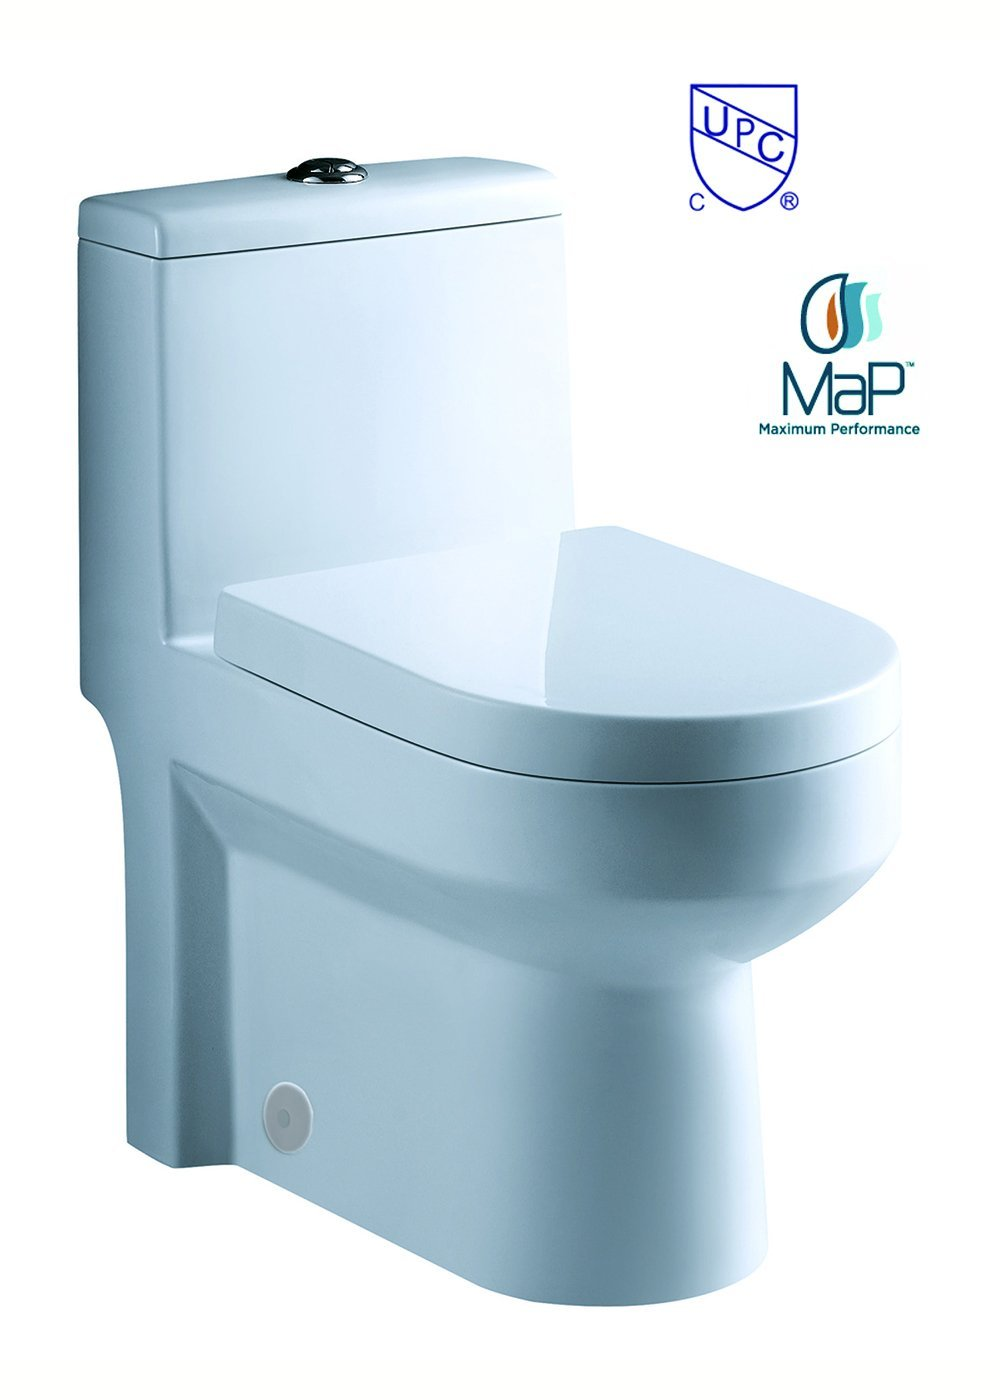 "toilet GALBA 24.5"" 24"" 25"" Inch SMALL TOILET One Piece 24 25 Cupc UPC Short Compact Bathroom Tiny Mini Commode Water Closet Dual Flush Short Projection Shortest Adult cUPC UPC elongated"